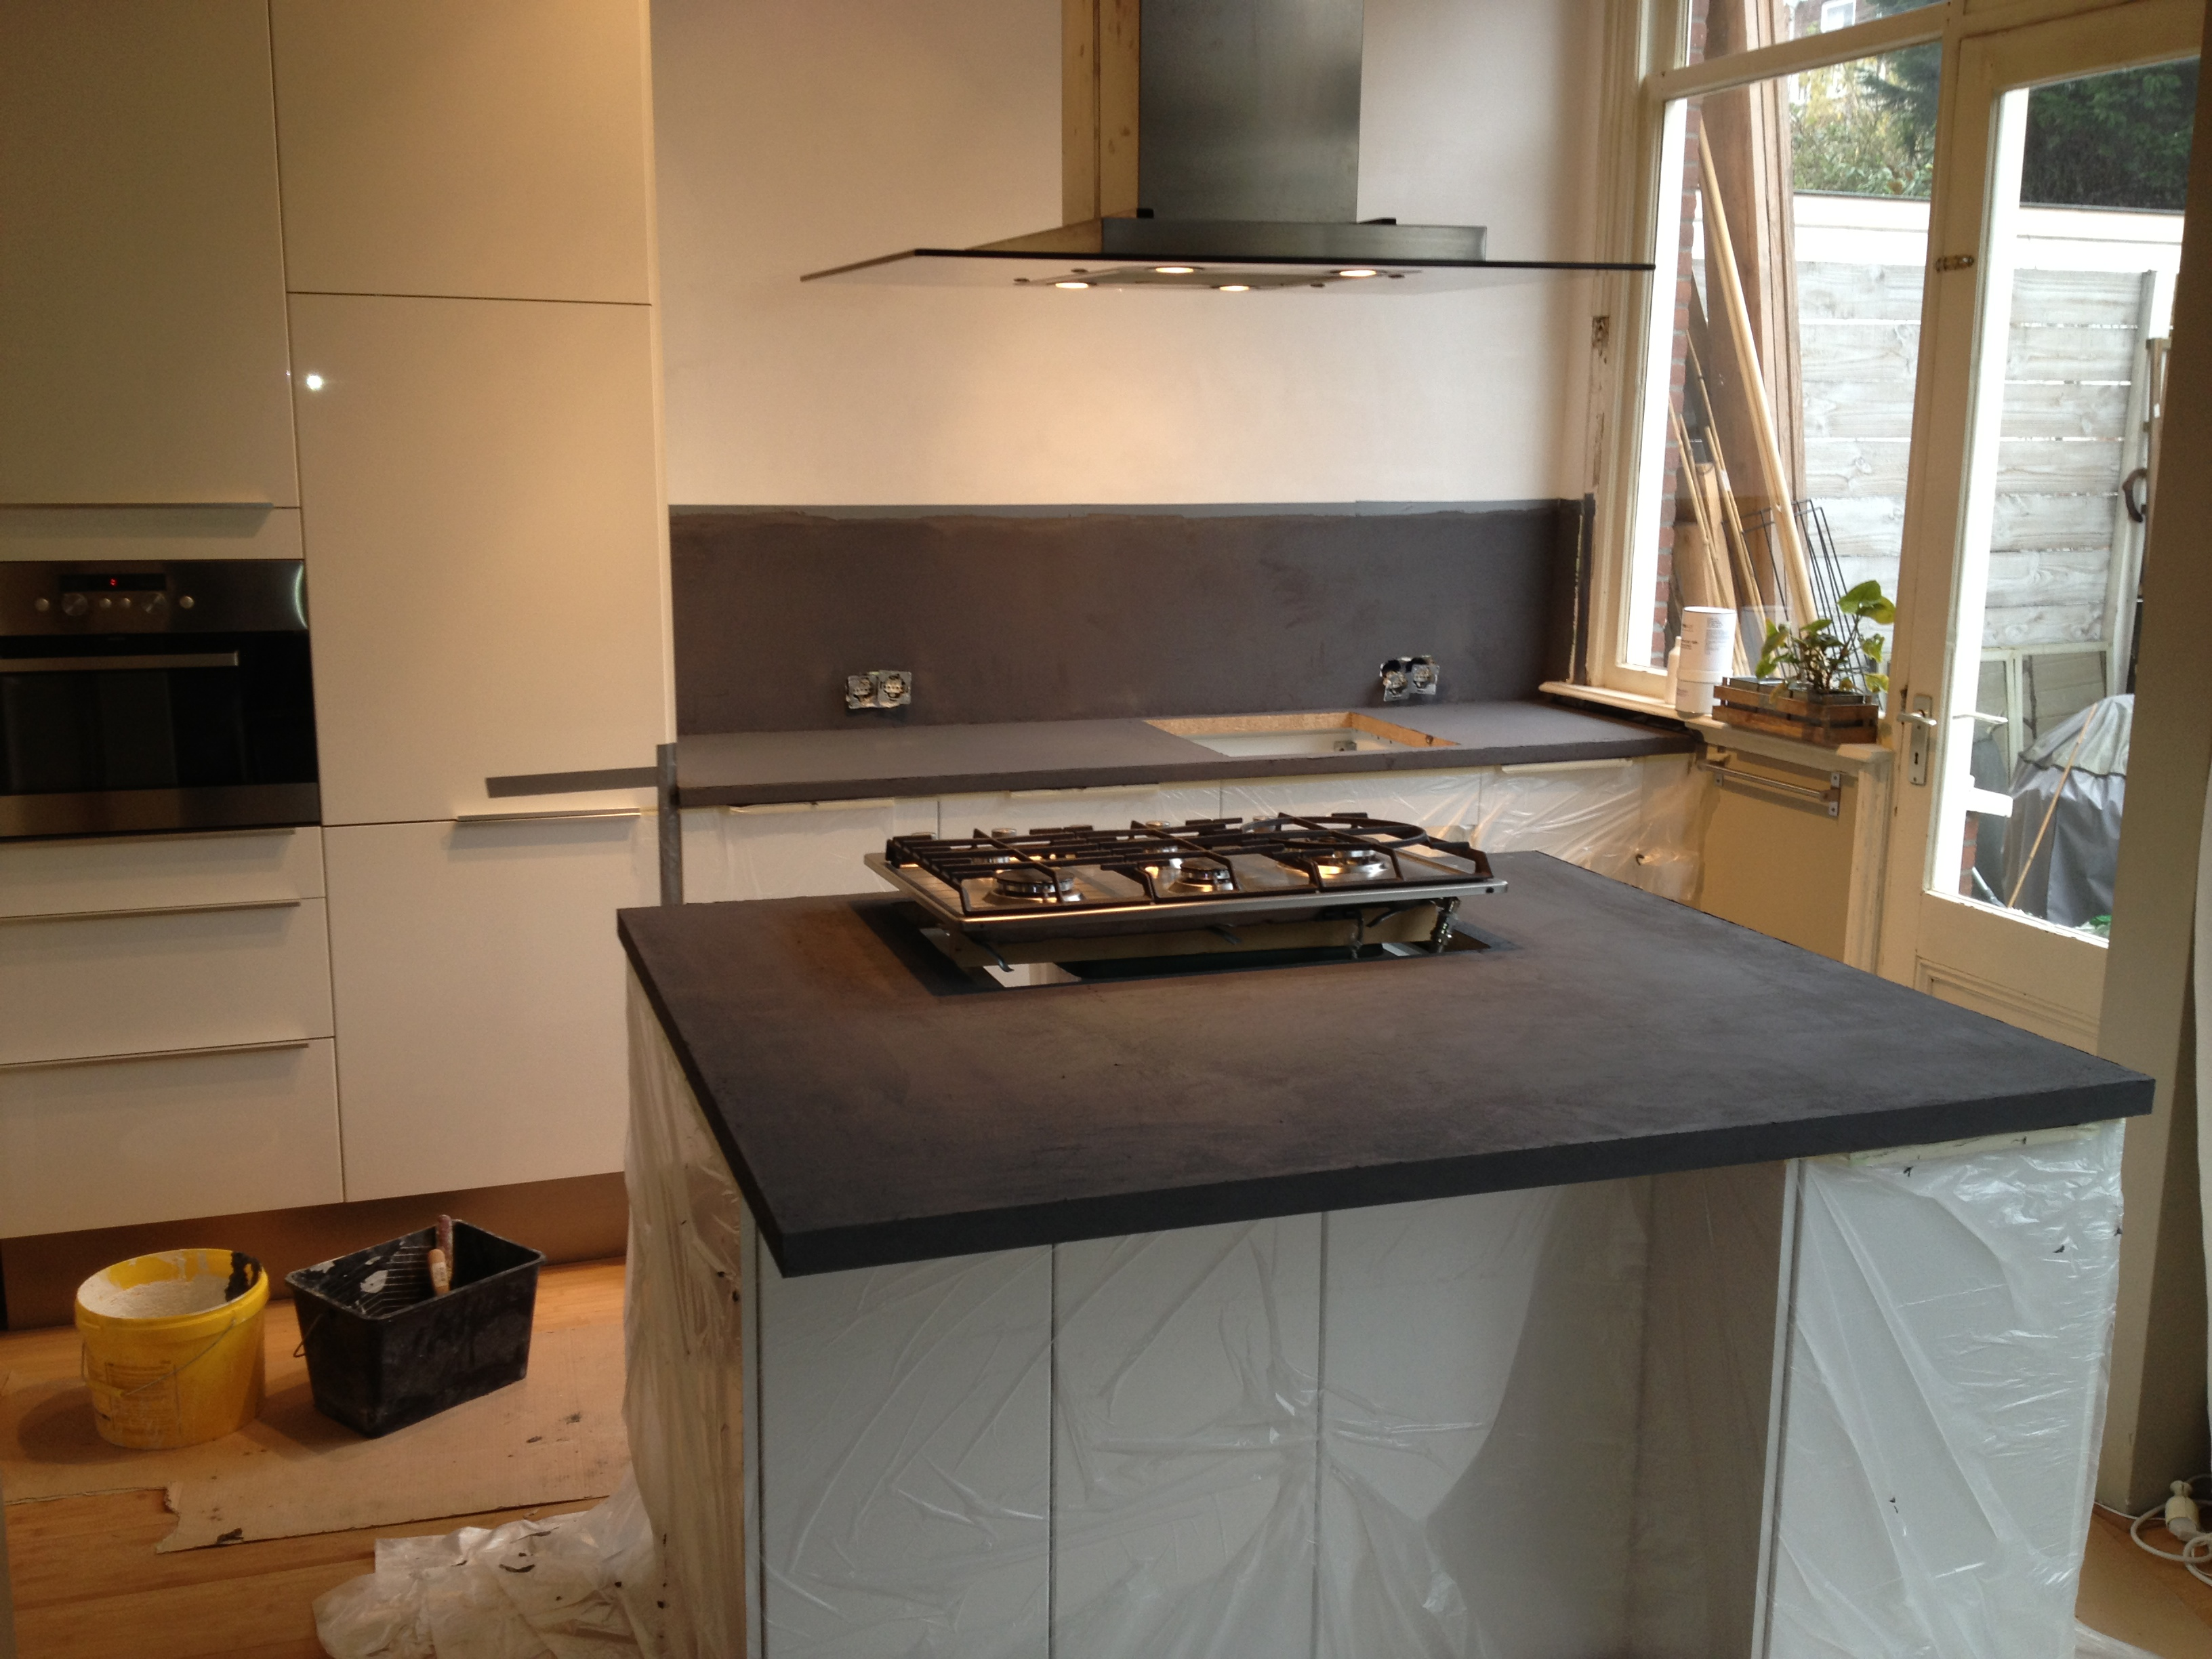 Beton Cire Keuken Achterwand : Beton Cir? Keuken Pictures to pin on Pinterest